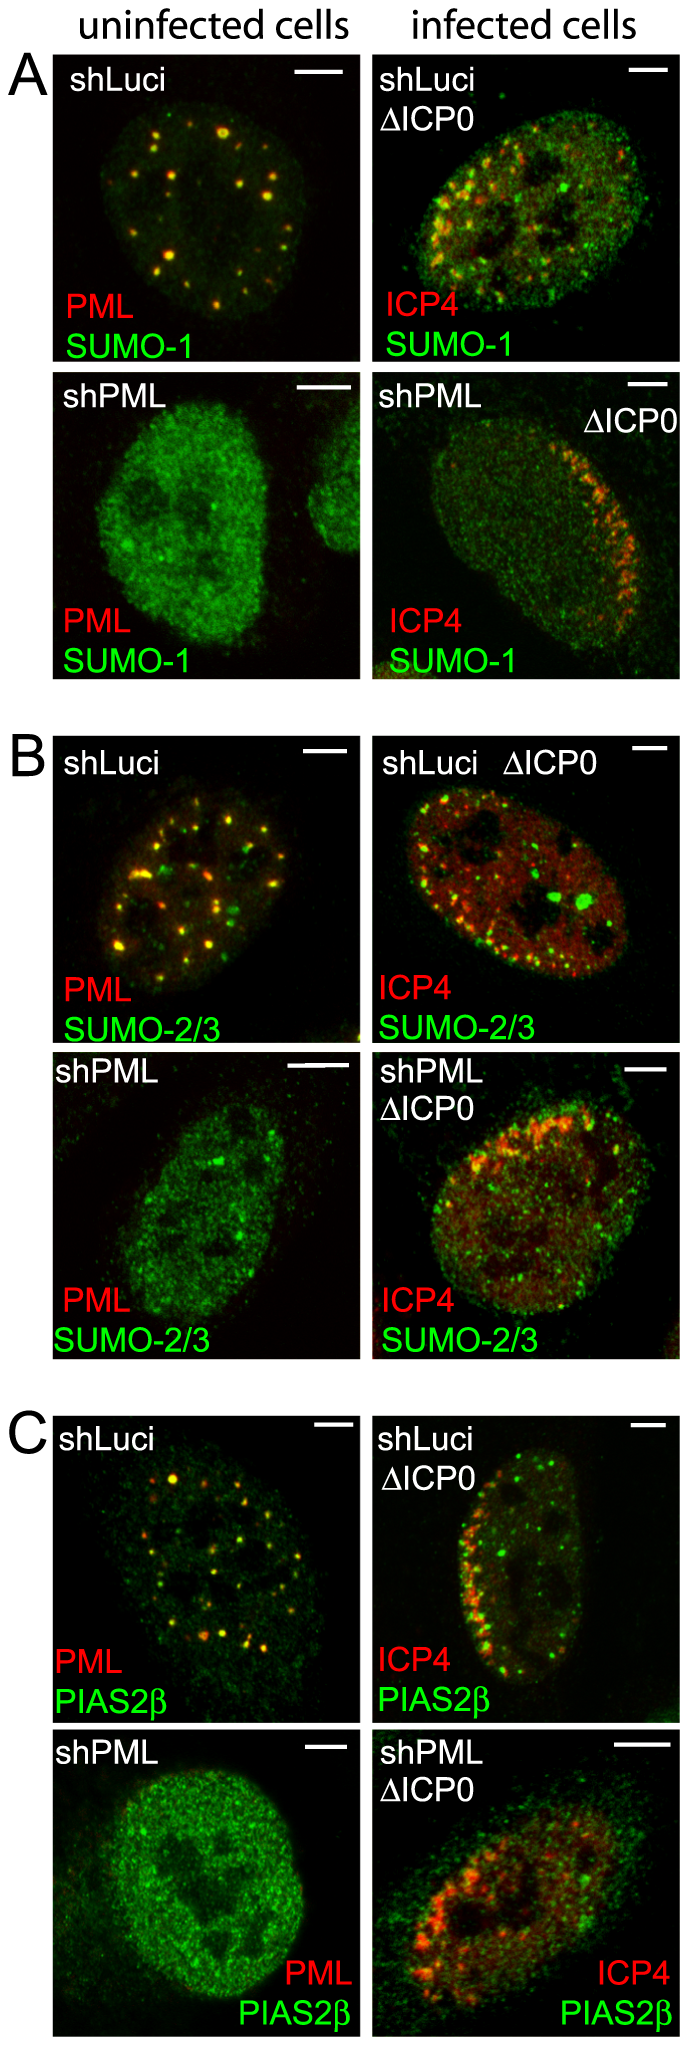 Recruitment of SUMO family members and PIAS2β to HSV-1 induced foci.